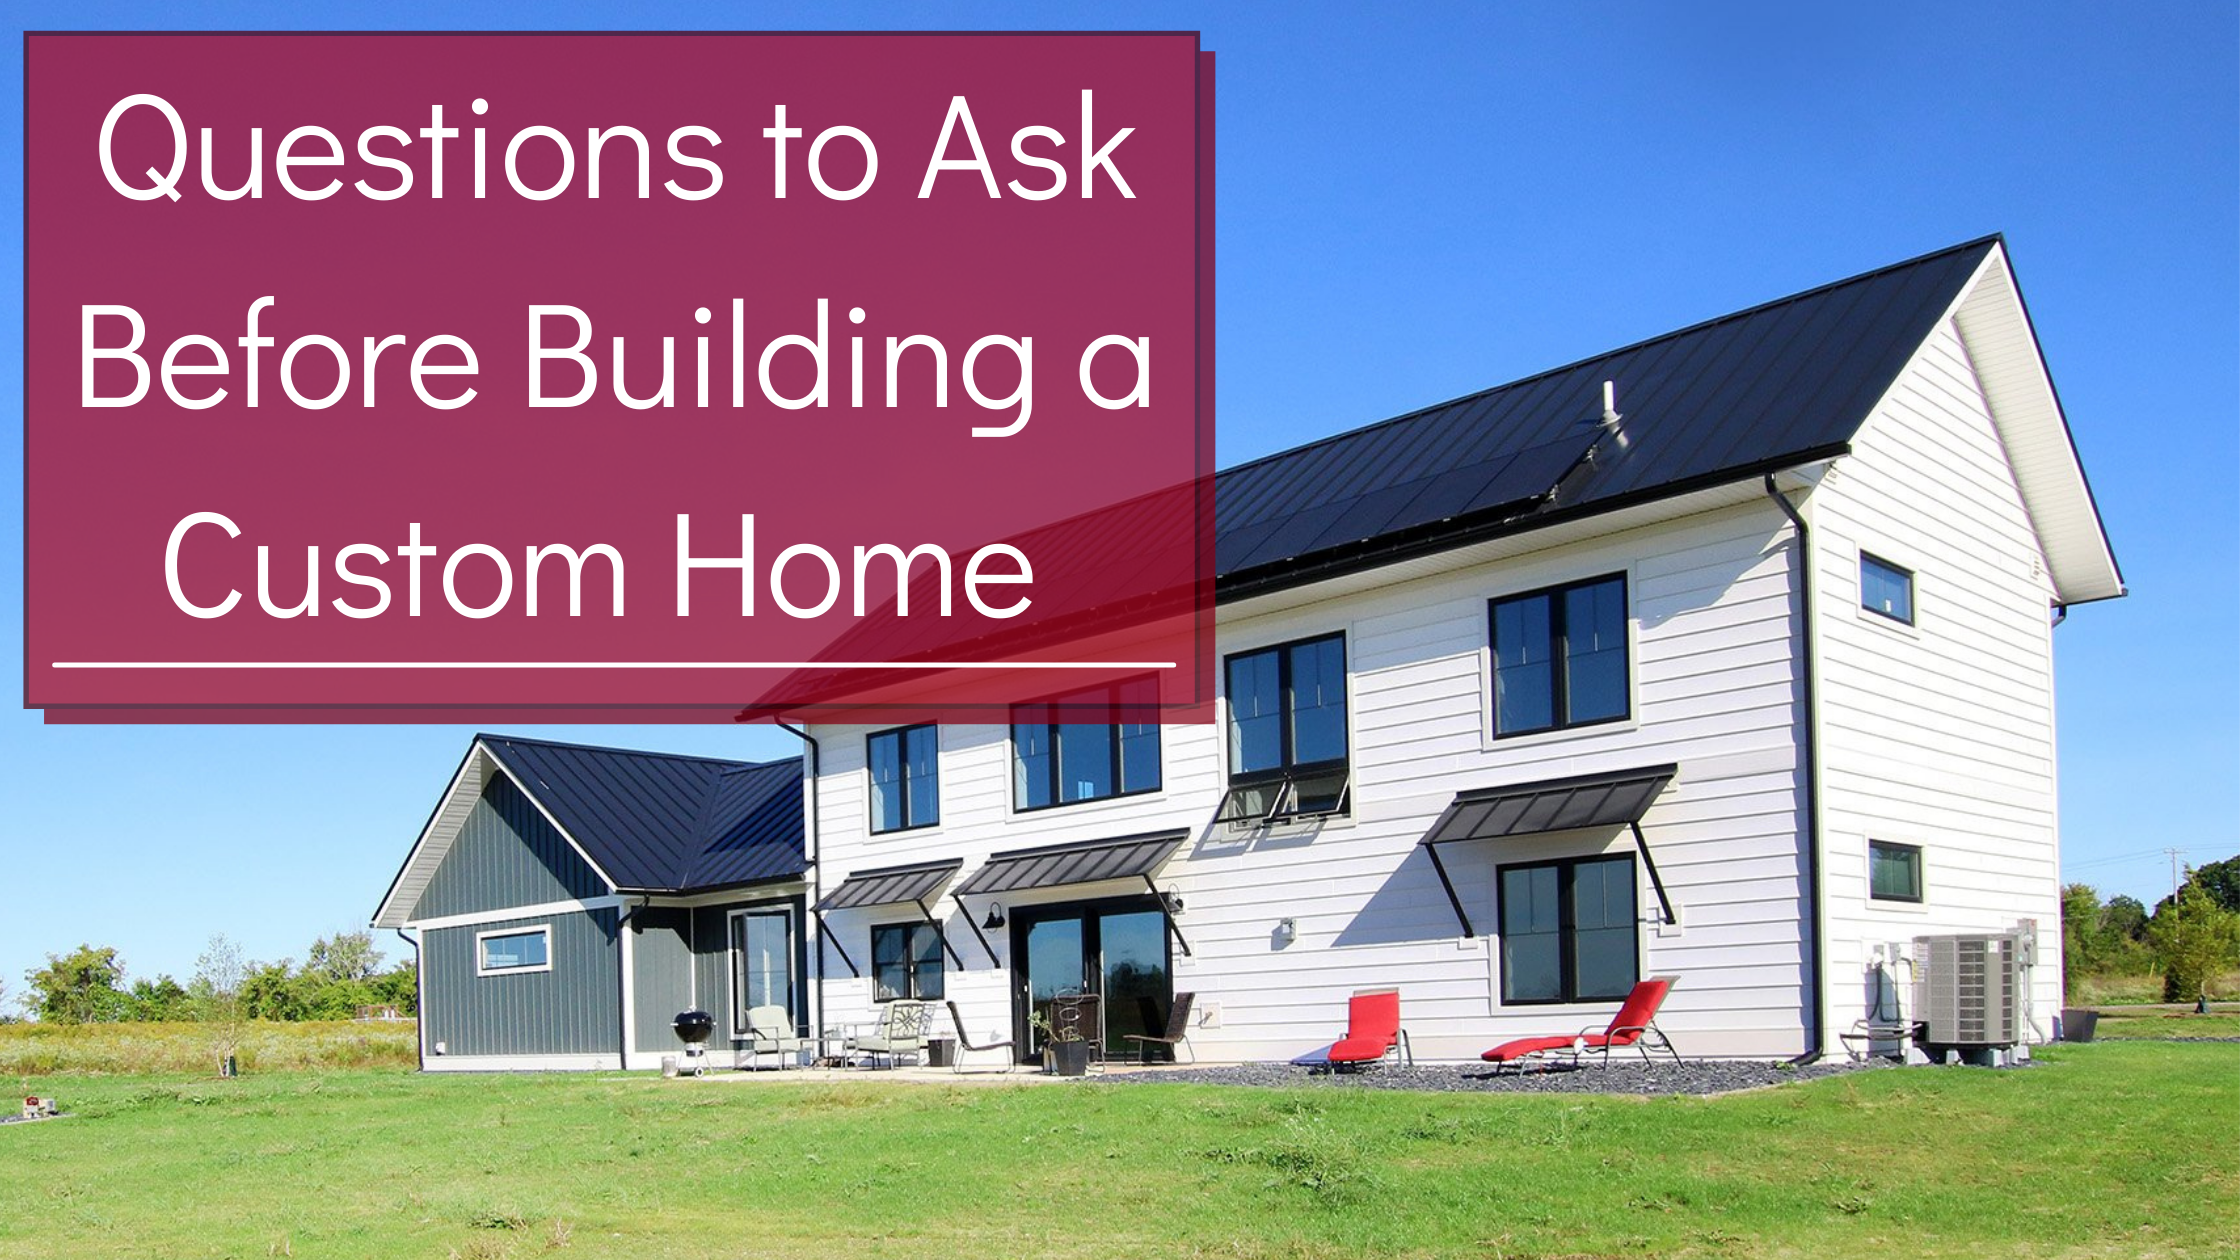 Questions to Ask Before Building a Custom Home in Grand Rapids, MI